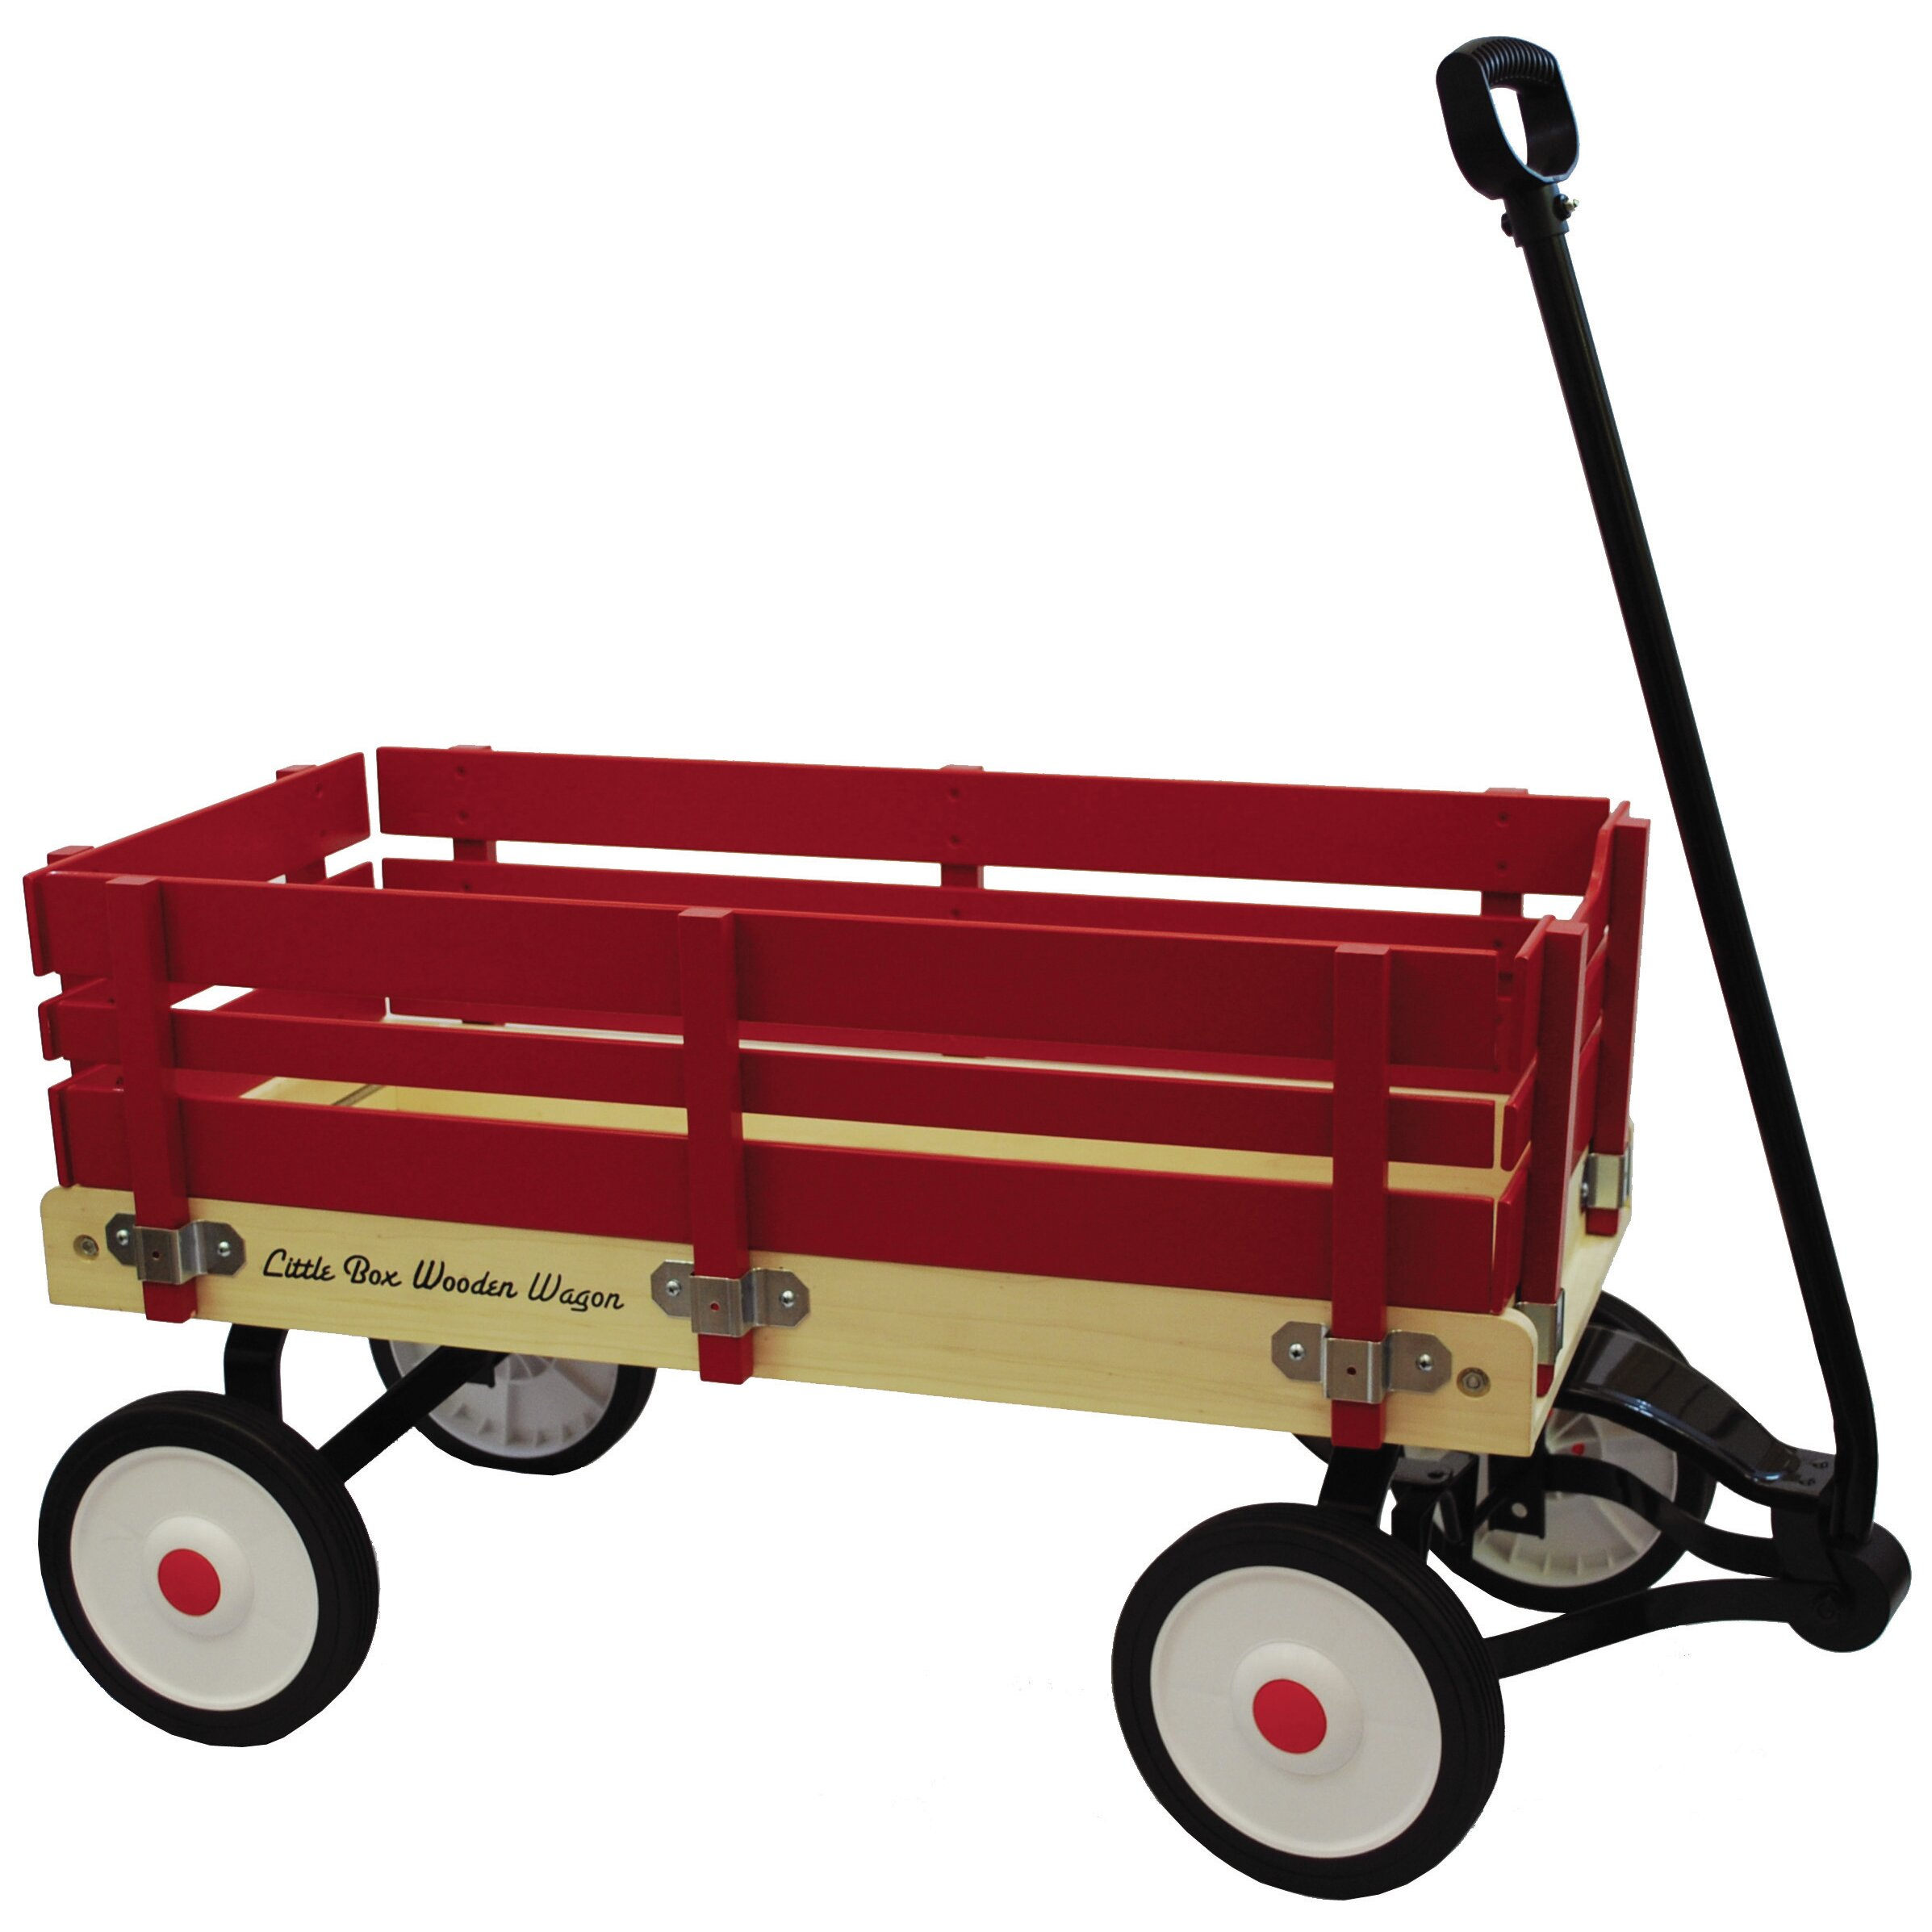 Grand Forward Little Box Wooden Wagon Ride On Amp Reviews